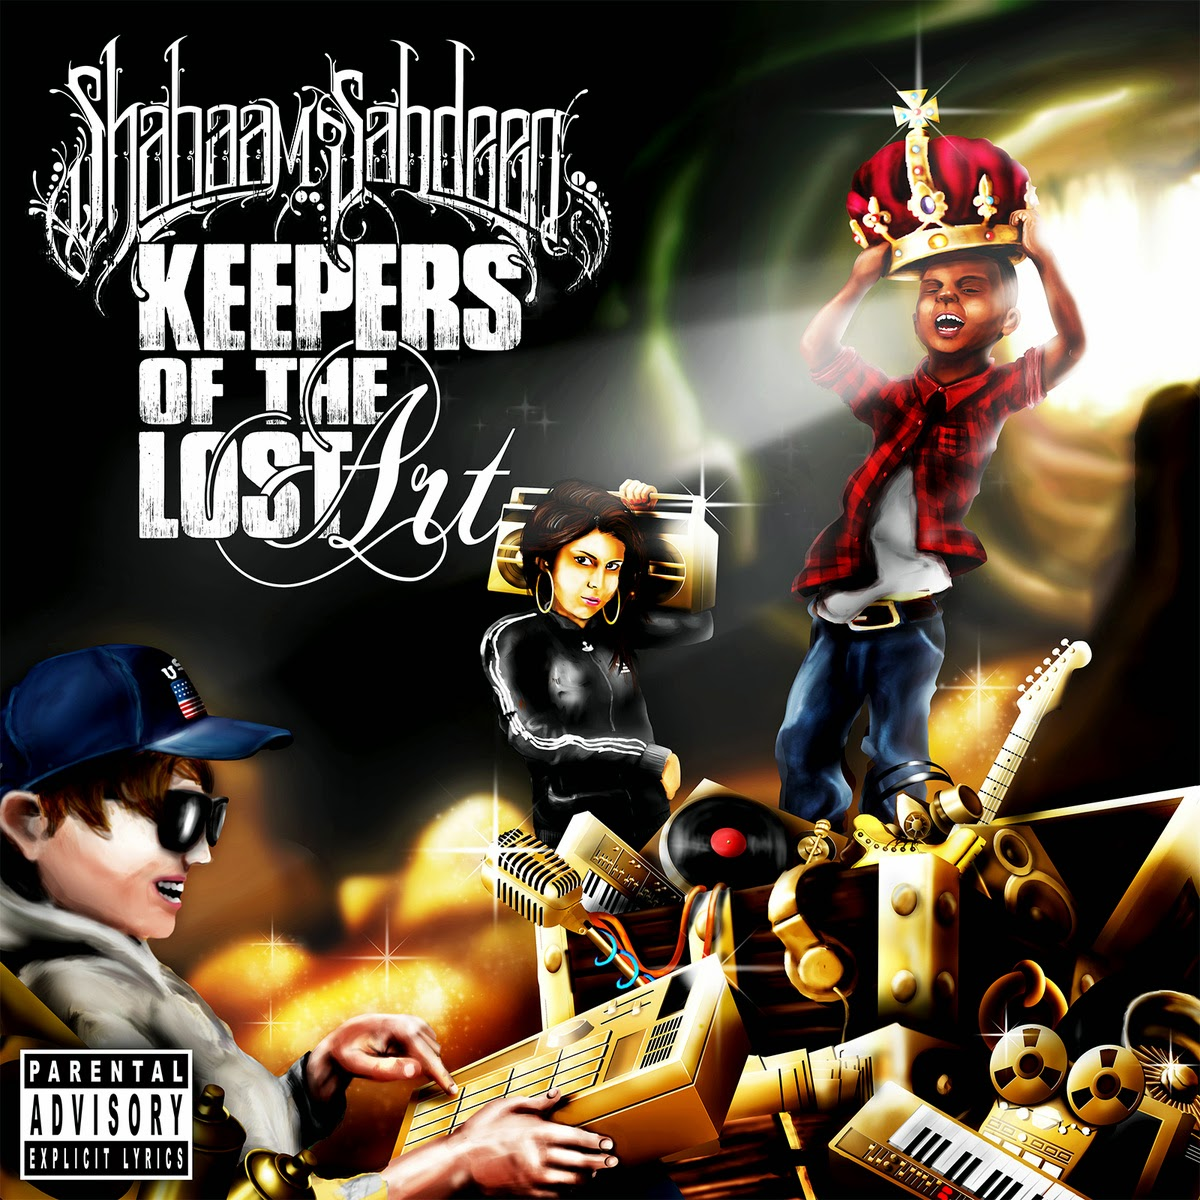 http://www.d4am.net/2014/05/shabaam-sahdeeq-keepers-of-lost-art.html